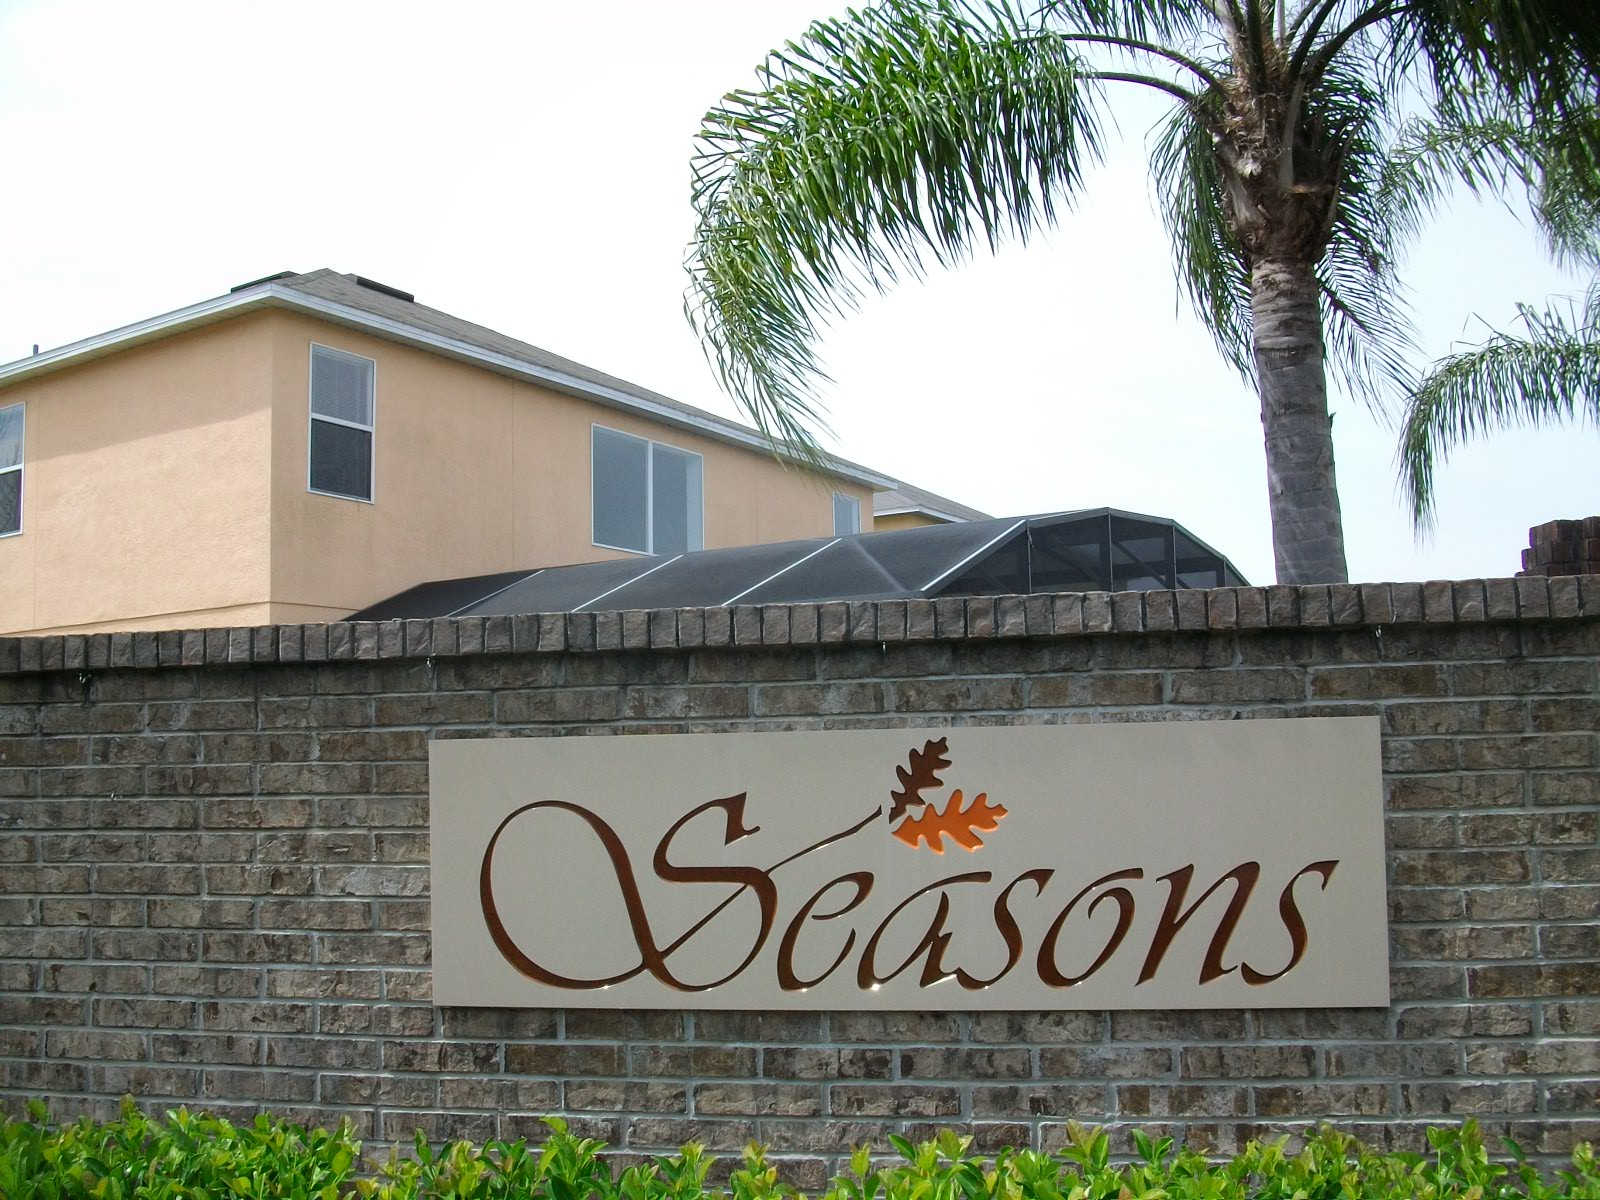 Seasons Kissimmee